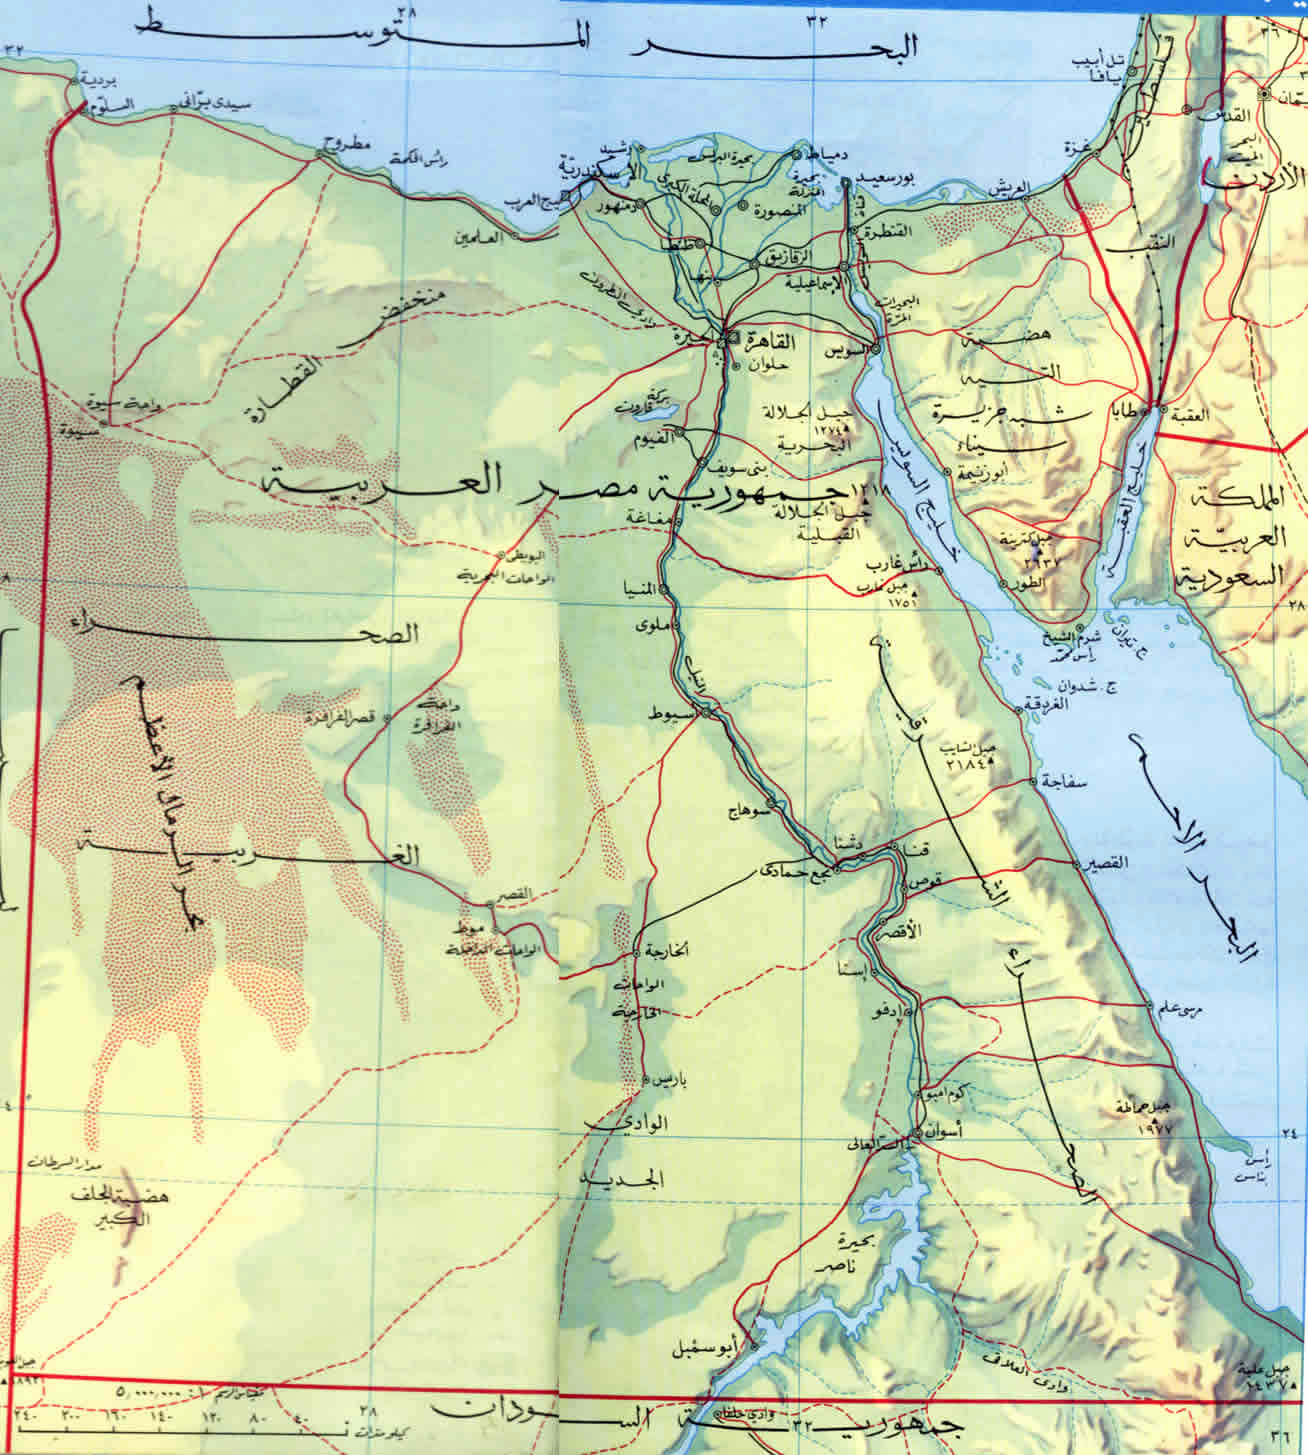 Large Elevation Map Of Egypt Egypt Africa Mapsland Maps Of - Map of egypt elevation